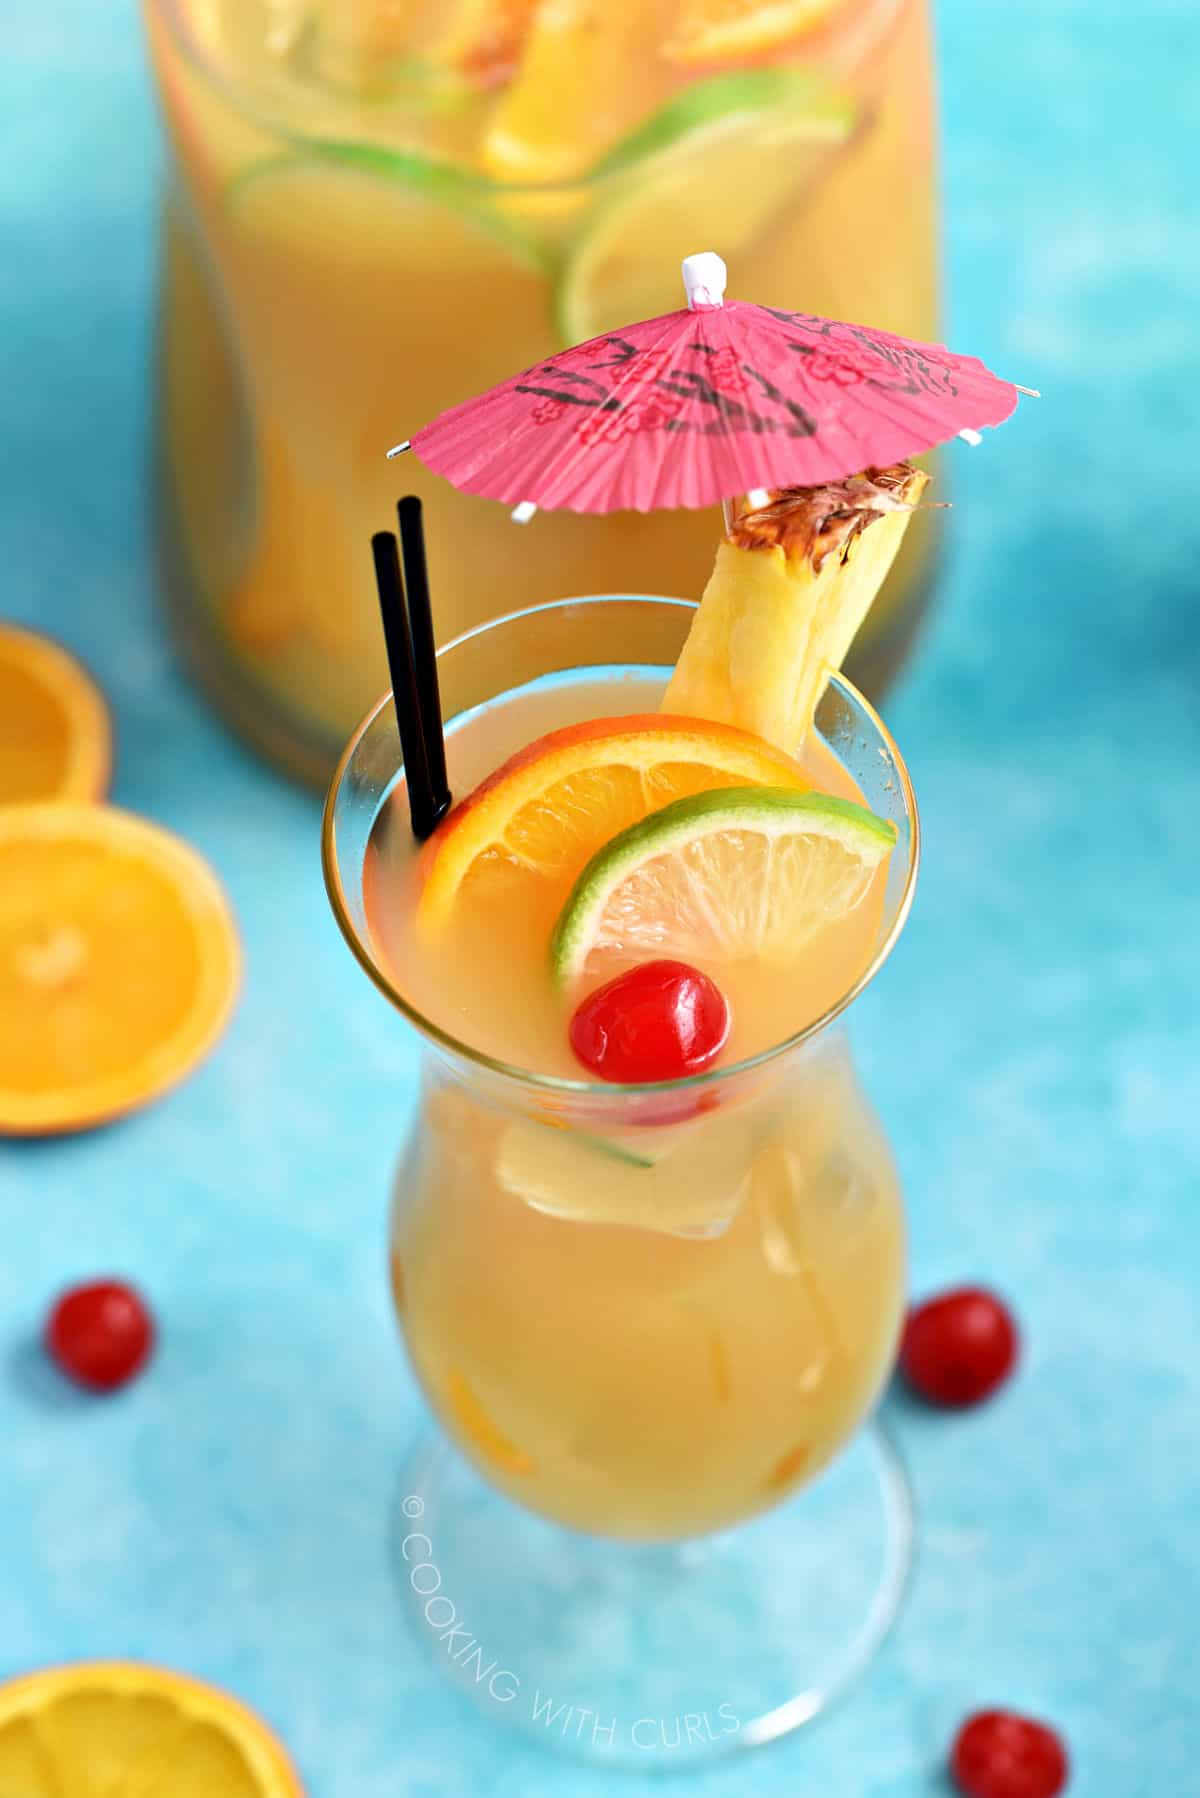 Hurricane glass filled with fruit punch, garnished with slices of orange and lime with a cherry and a pineapple slice with a pink paper umbrella on the rim.